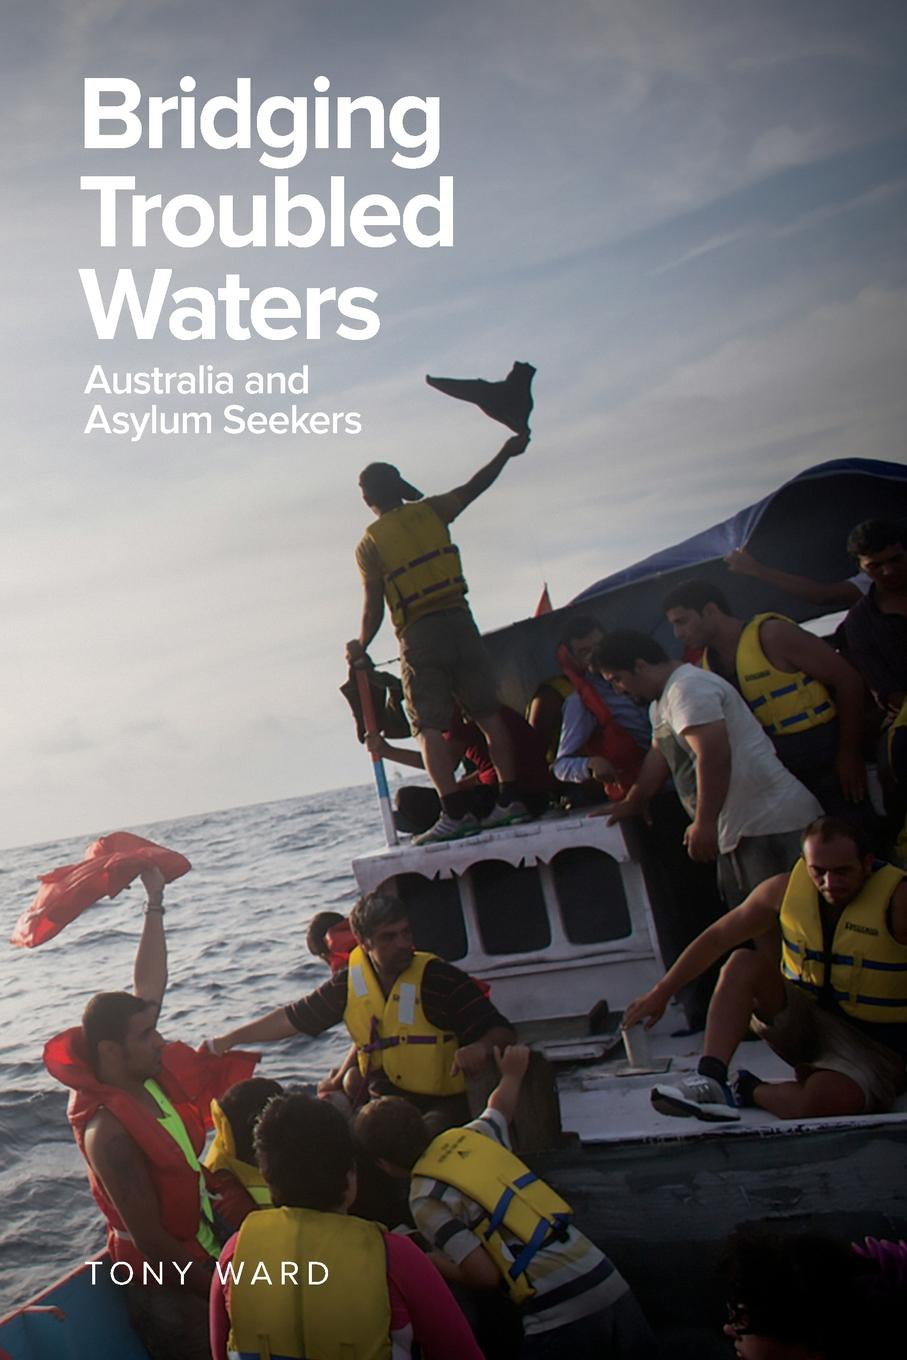 Tony Ward Bridging Troubled Waters. Australia and Asylum Seekers